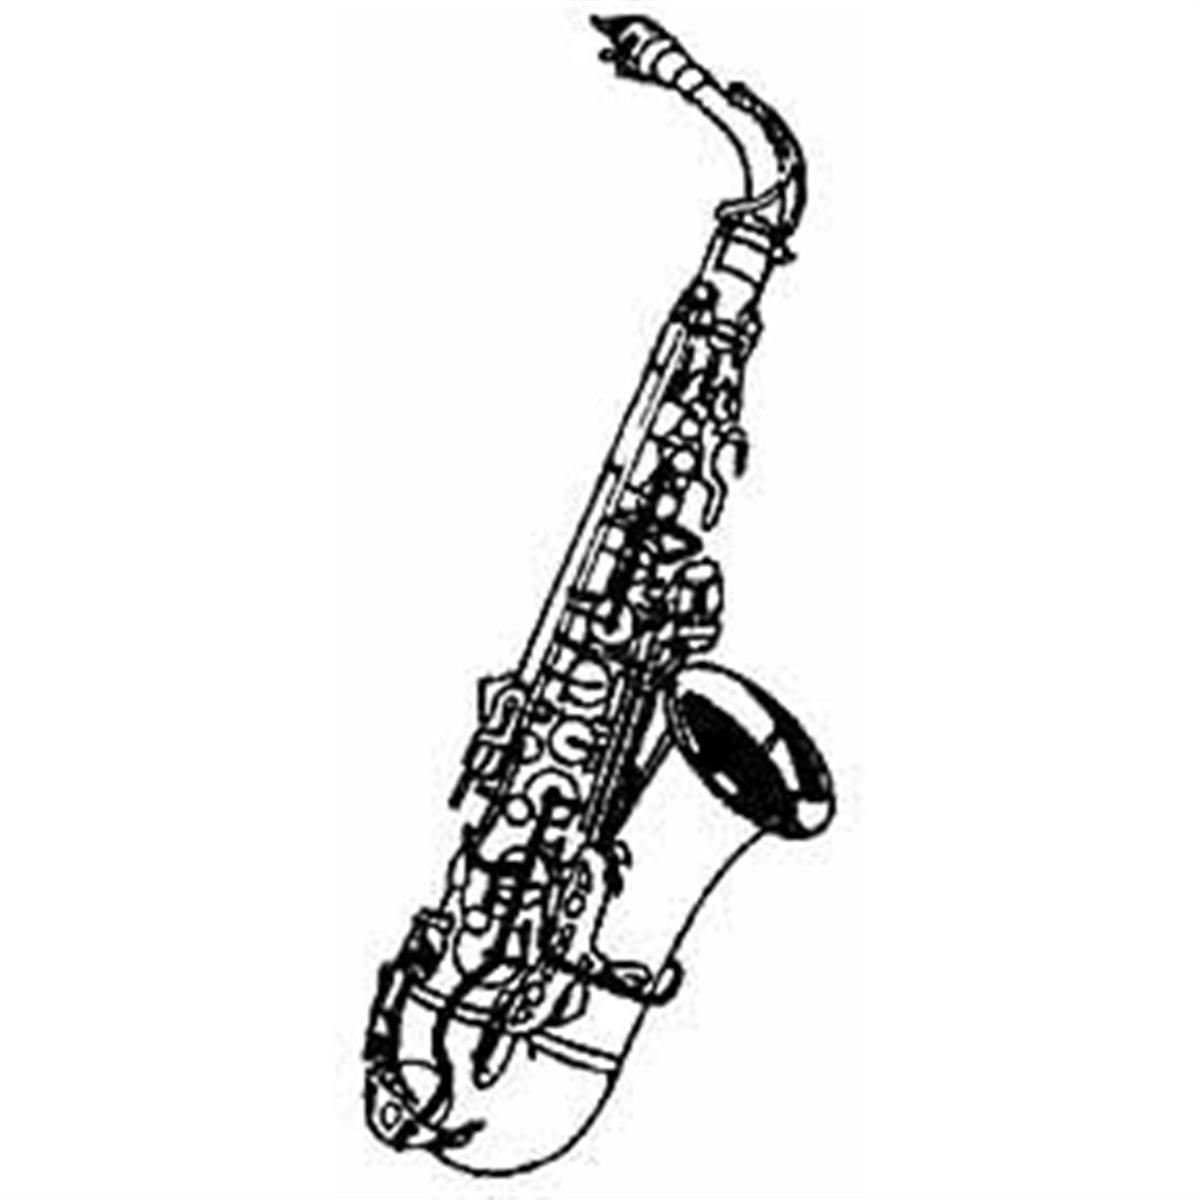 how to draw a alto saxophone alto saxophone stock images royalty free images vectors draw how to alto saxophone a